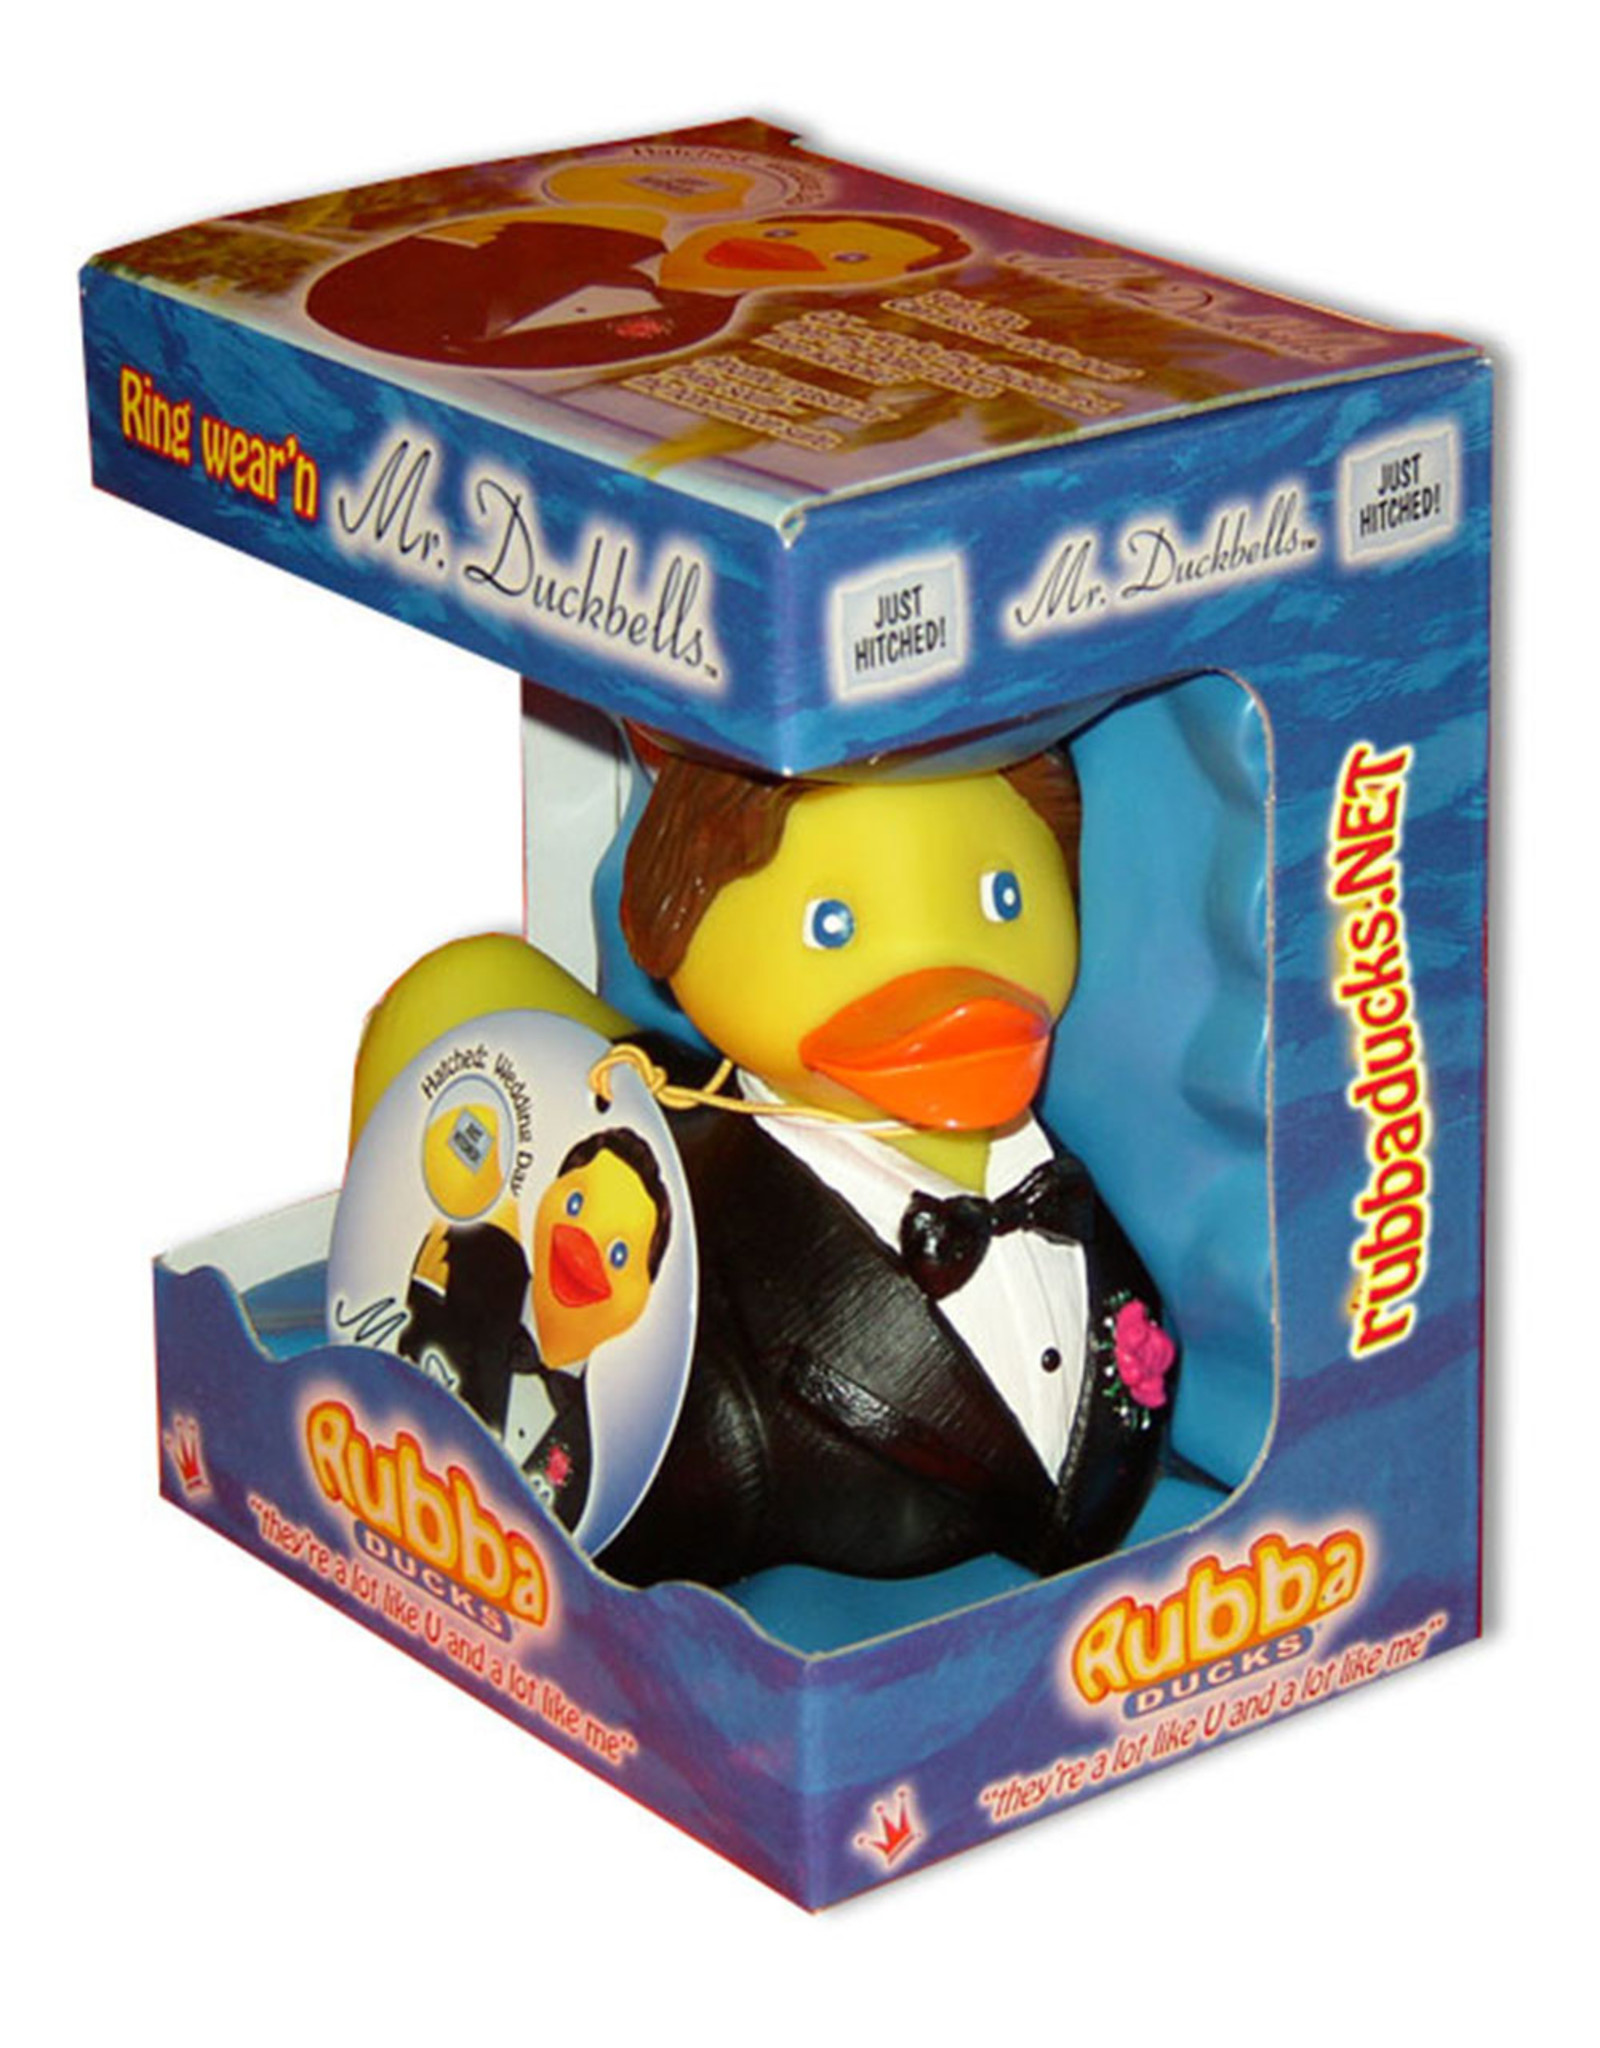 Mr. Duckbells Rubber Duck